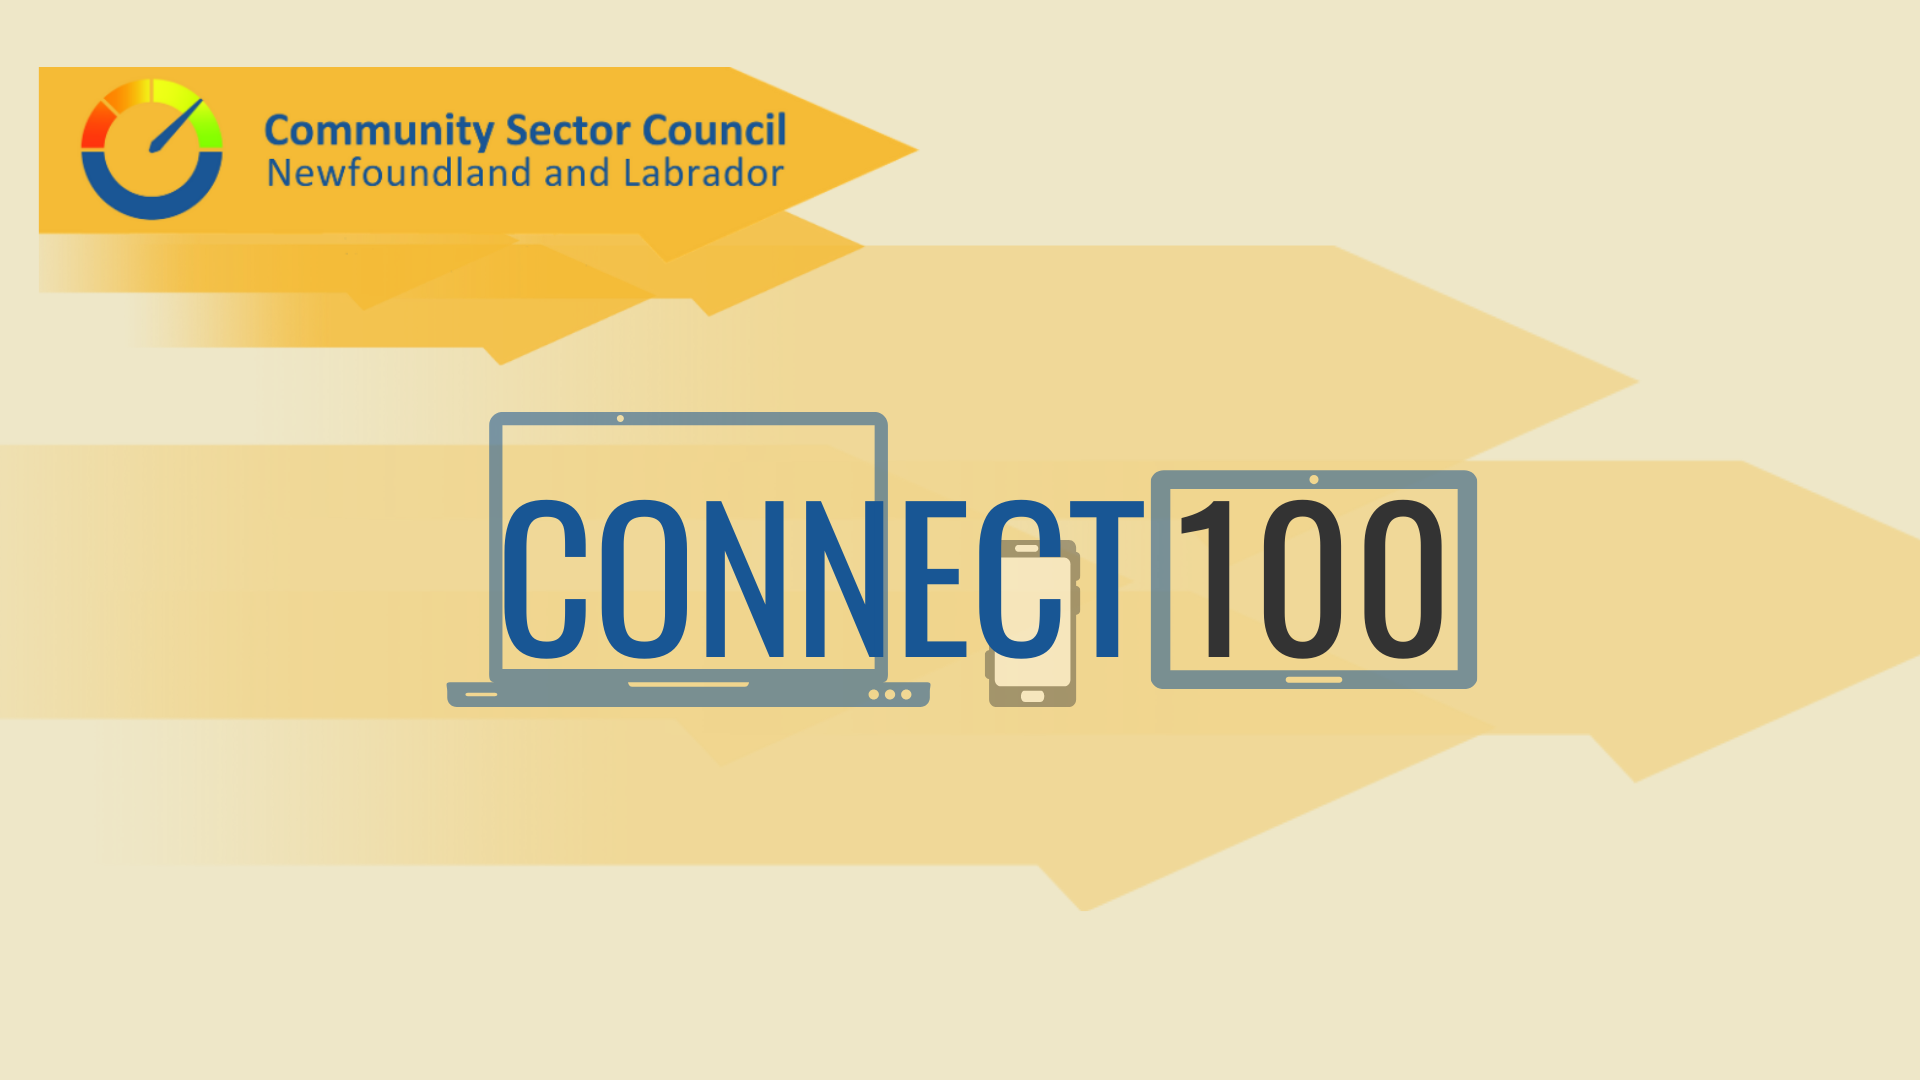 http://communitysector.nl.ca/connect100